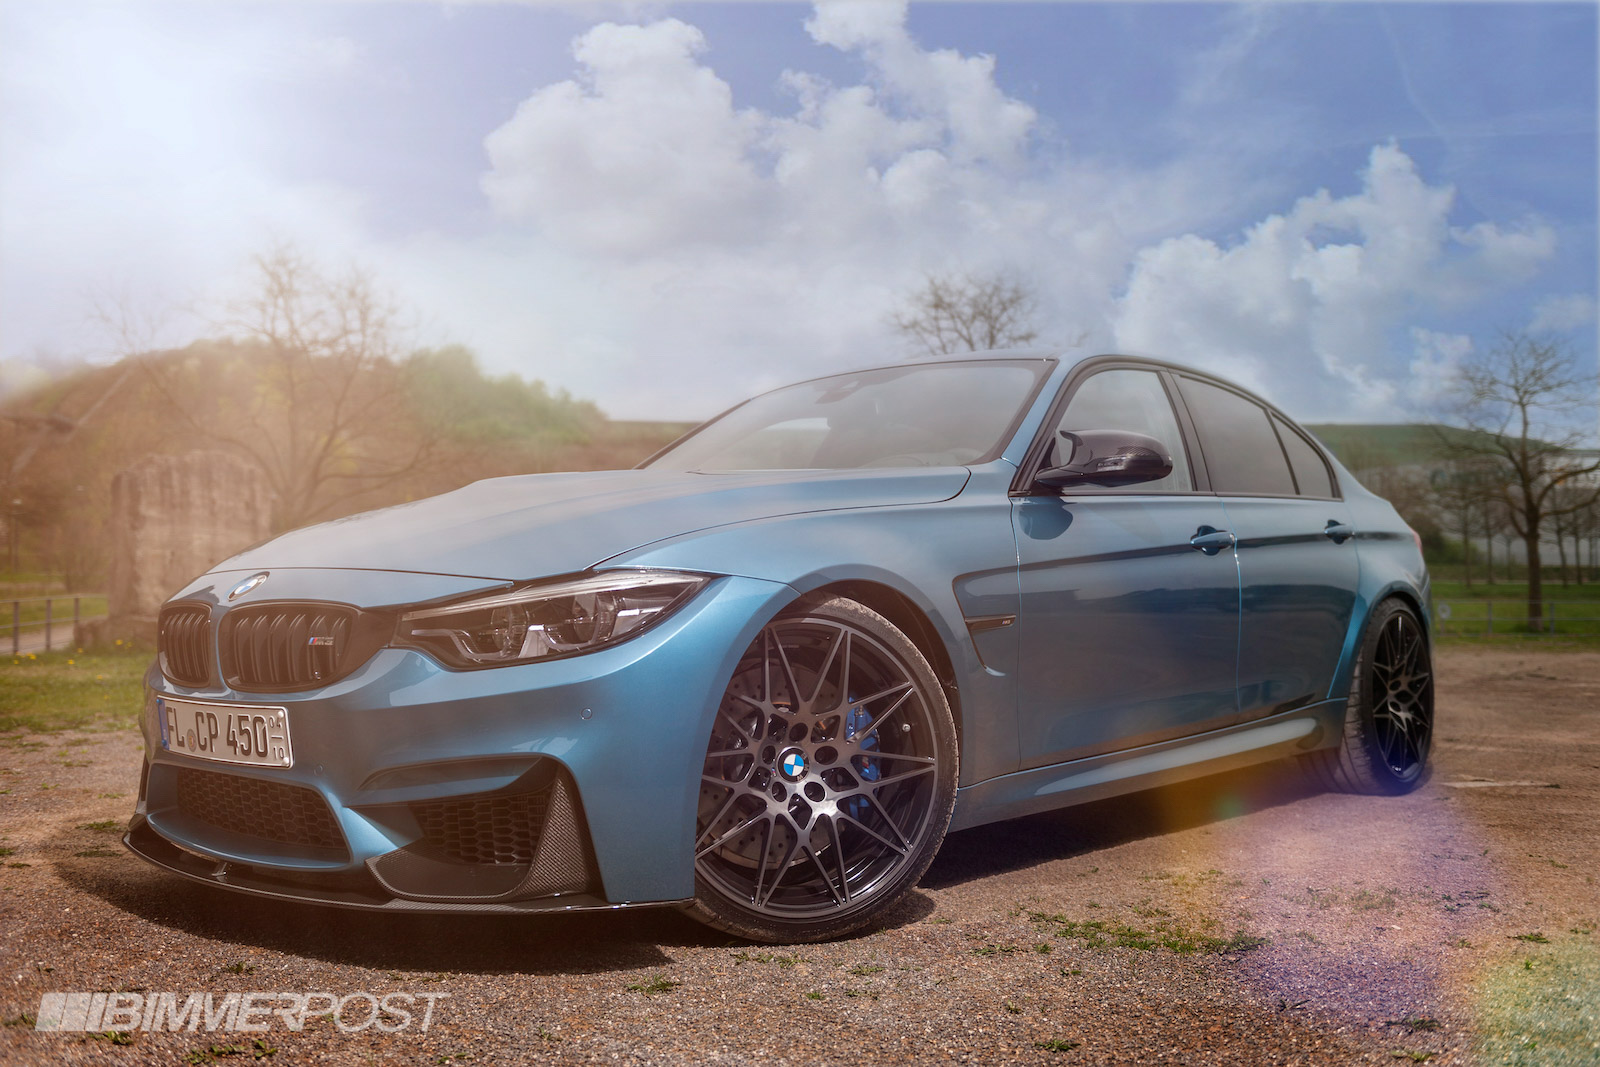 F80 M3 In One Of A Kind Maldives Blue Ii Individual